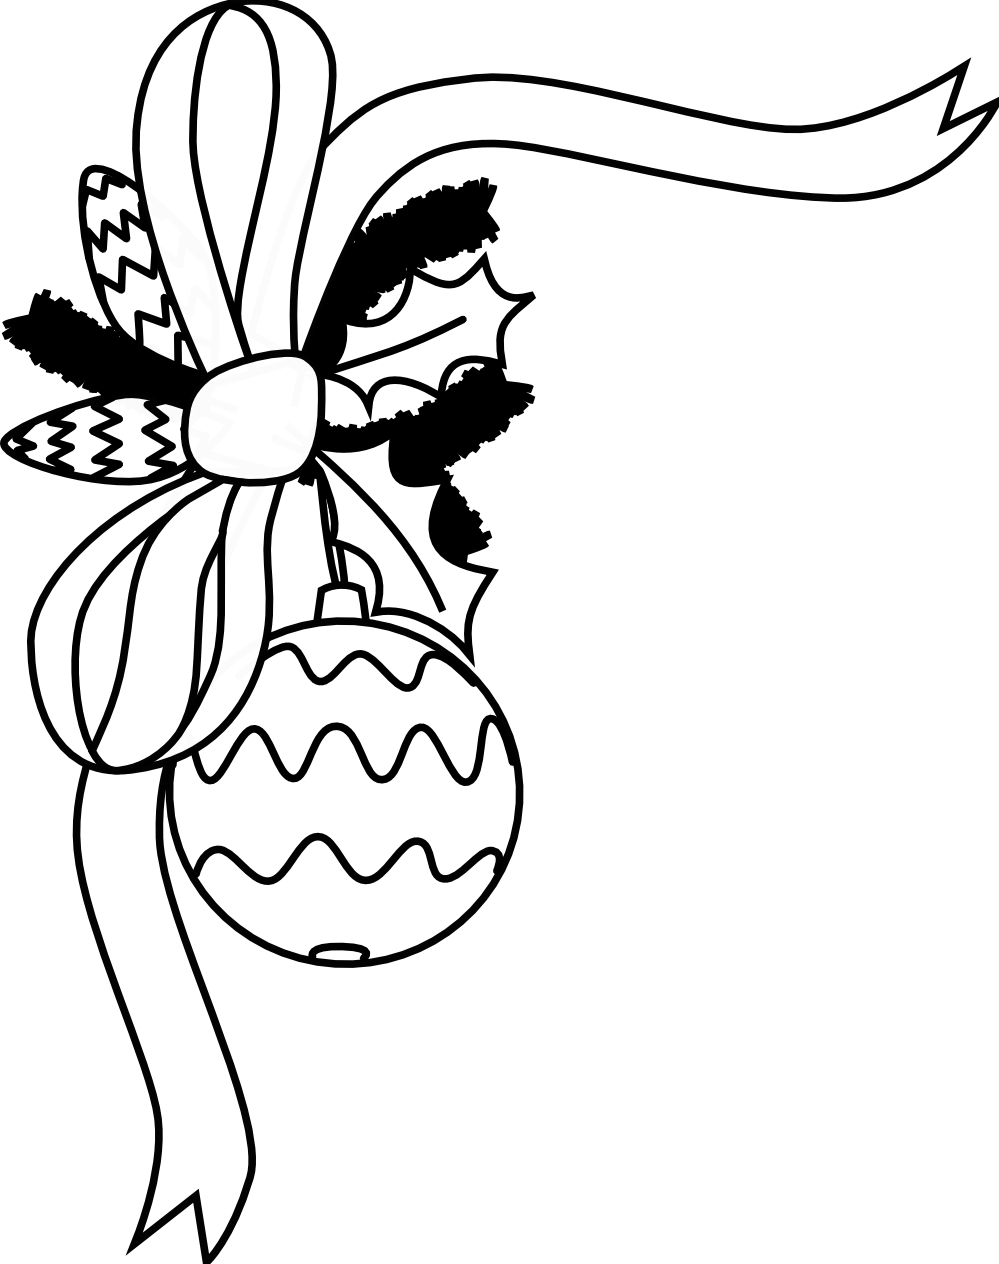 clipart black and white download History clipart black and white. Free christmas clip art